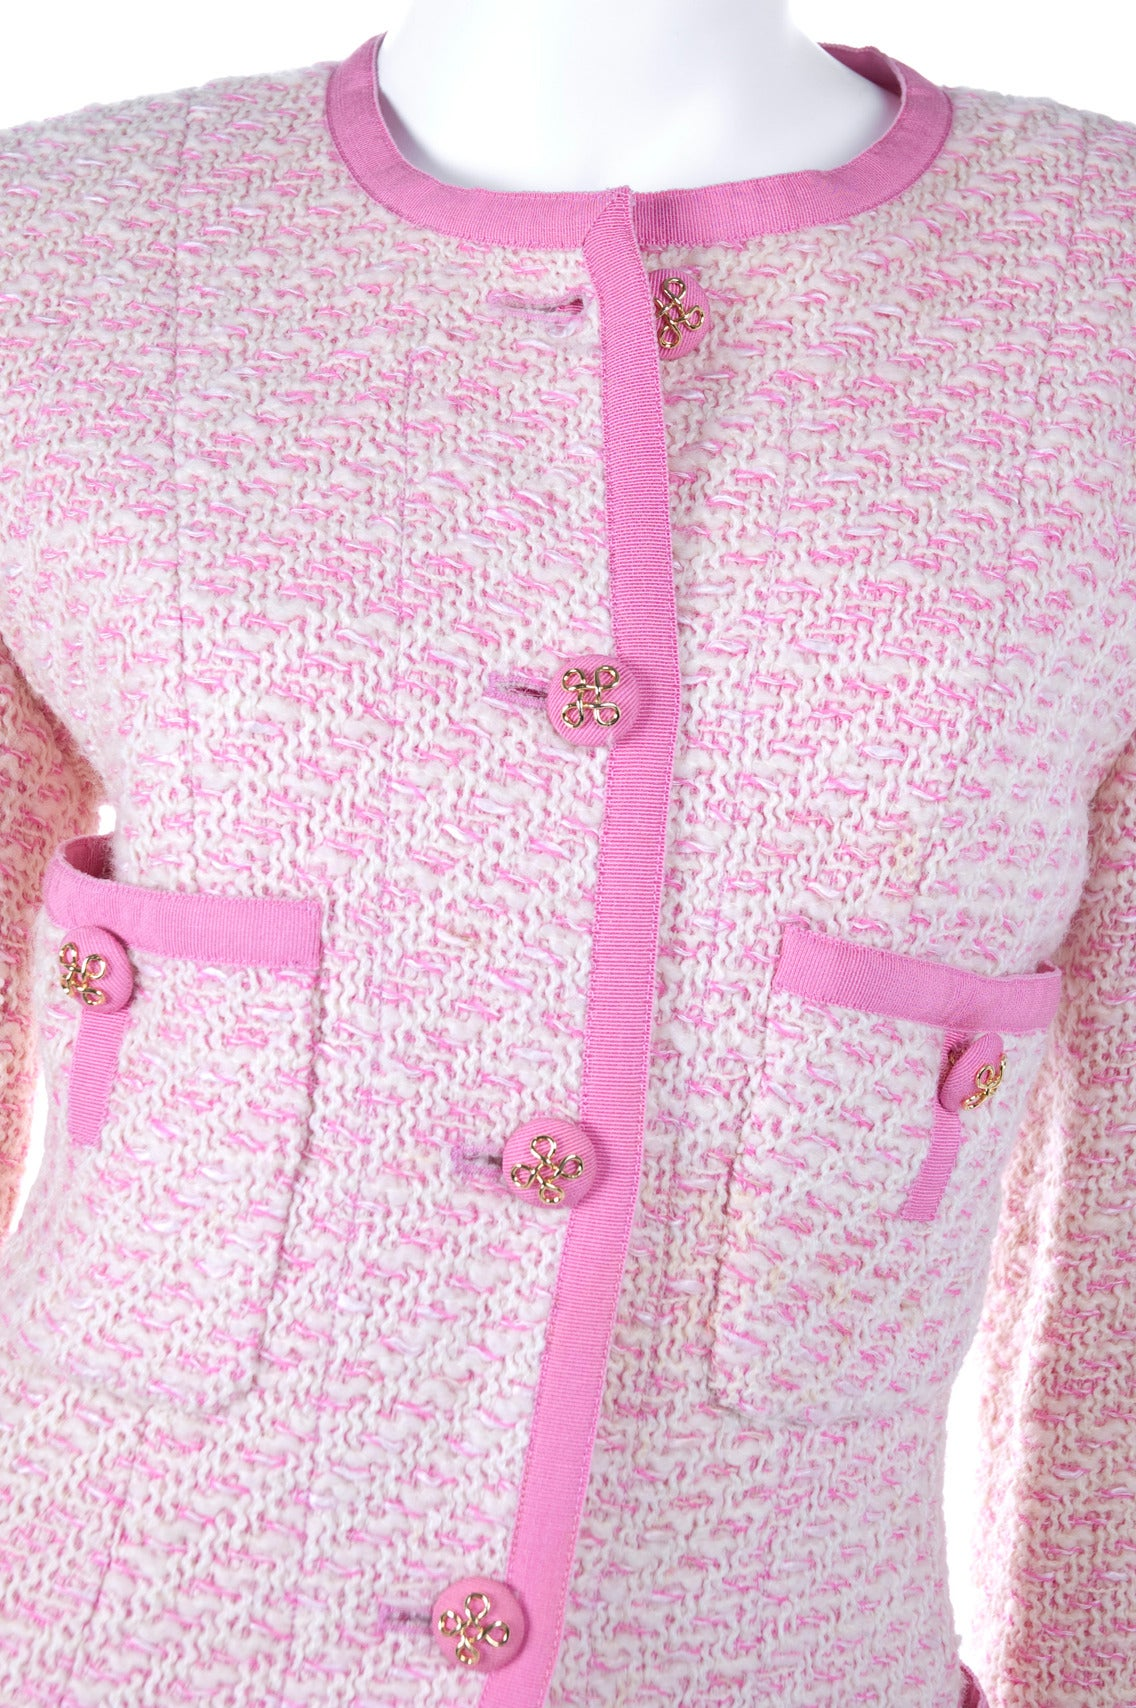 Chanel Suit in Pink and Creme Documented 2